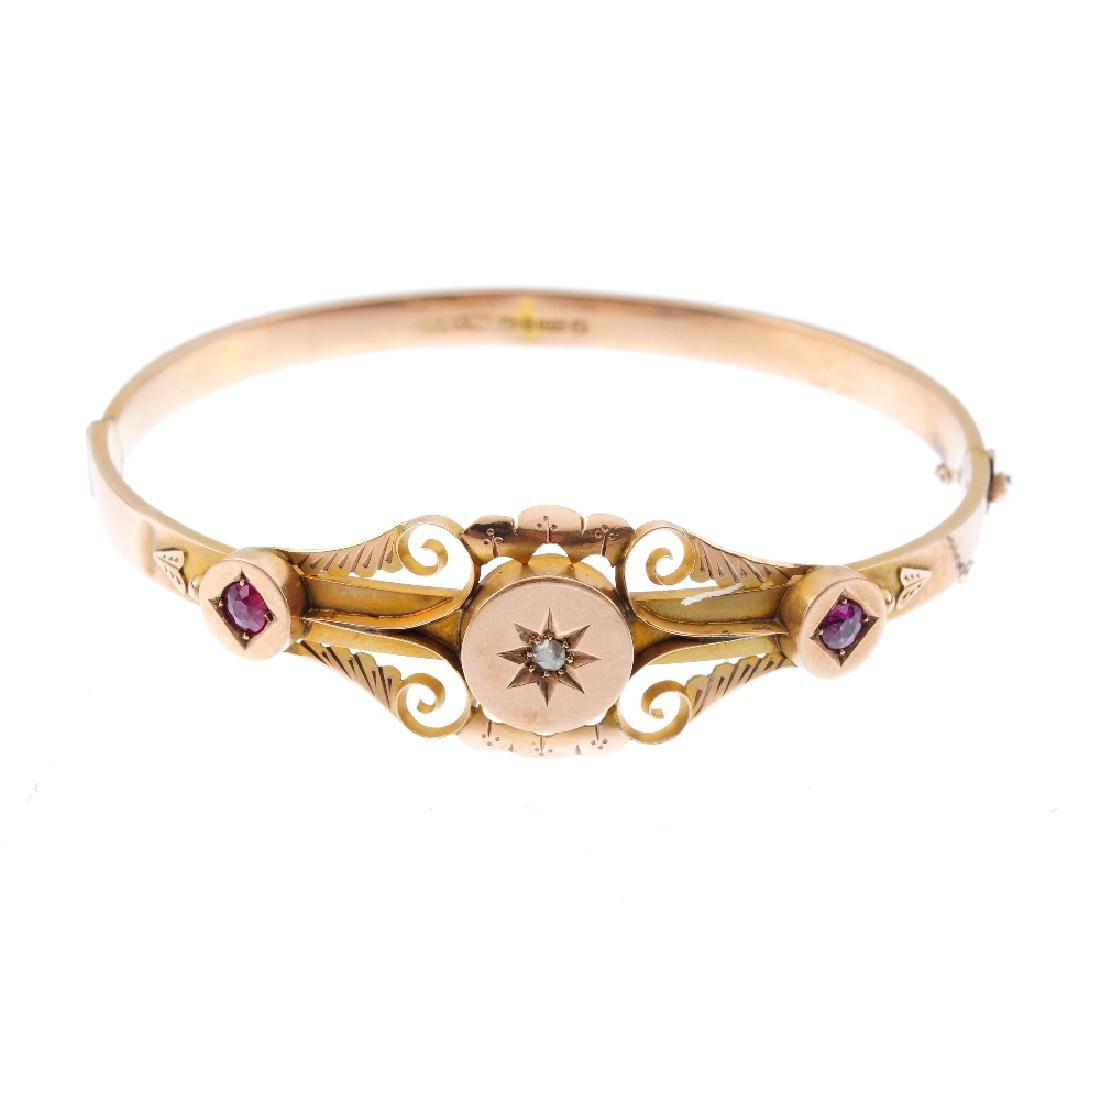 An early 20th century 9ct gold ruby and diamond hinged